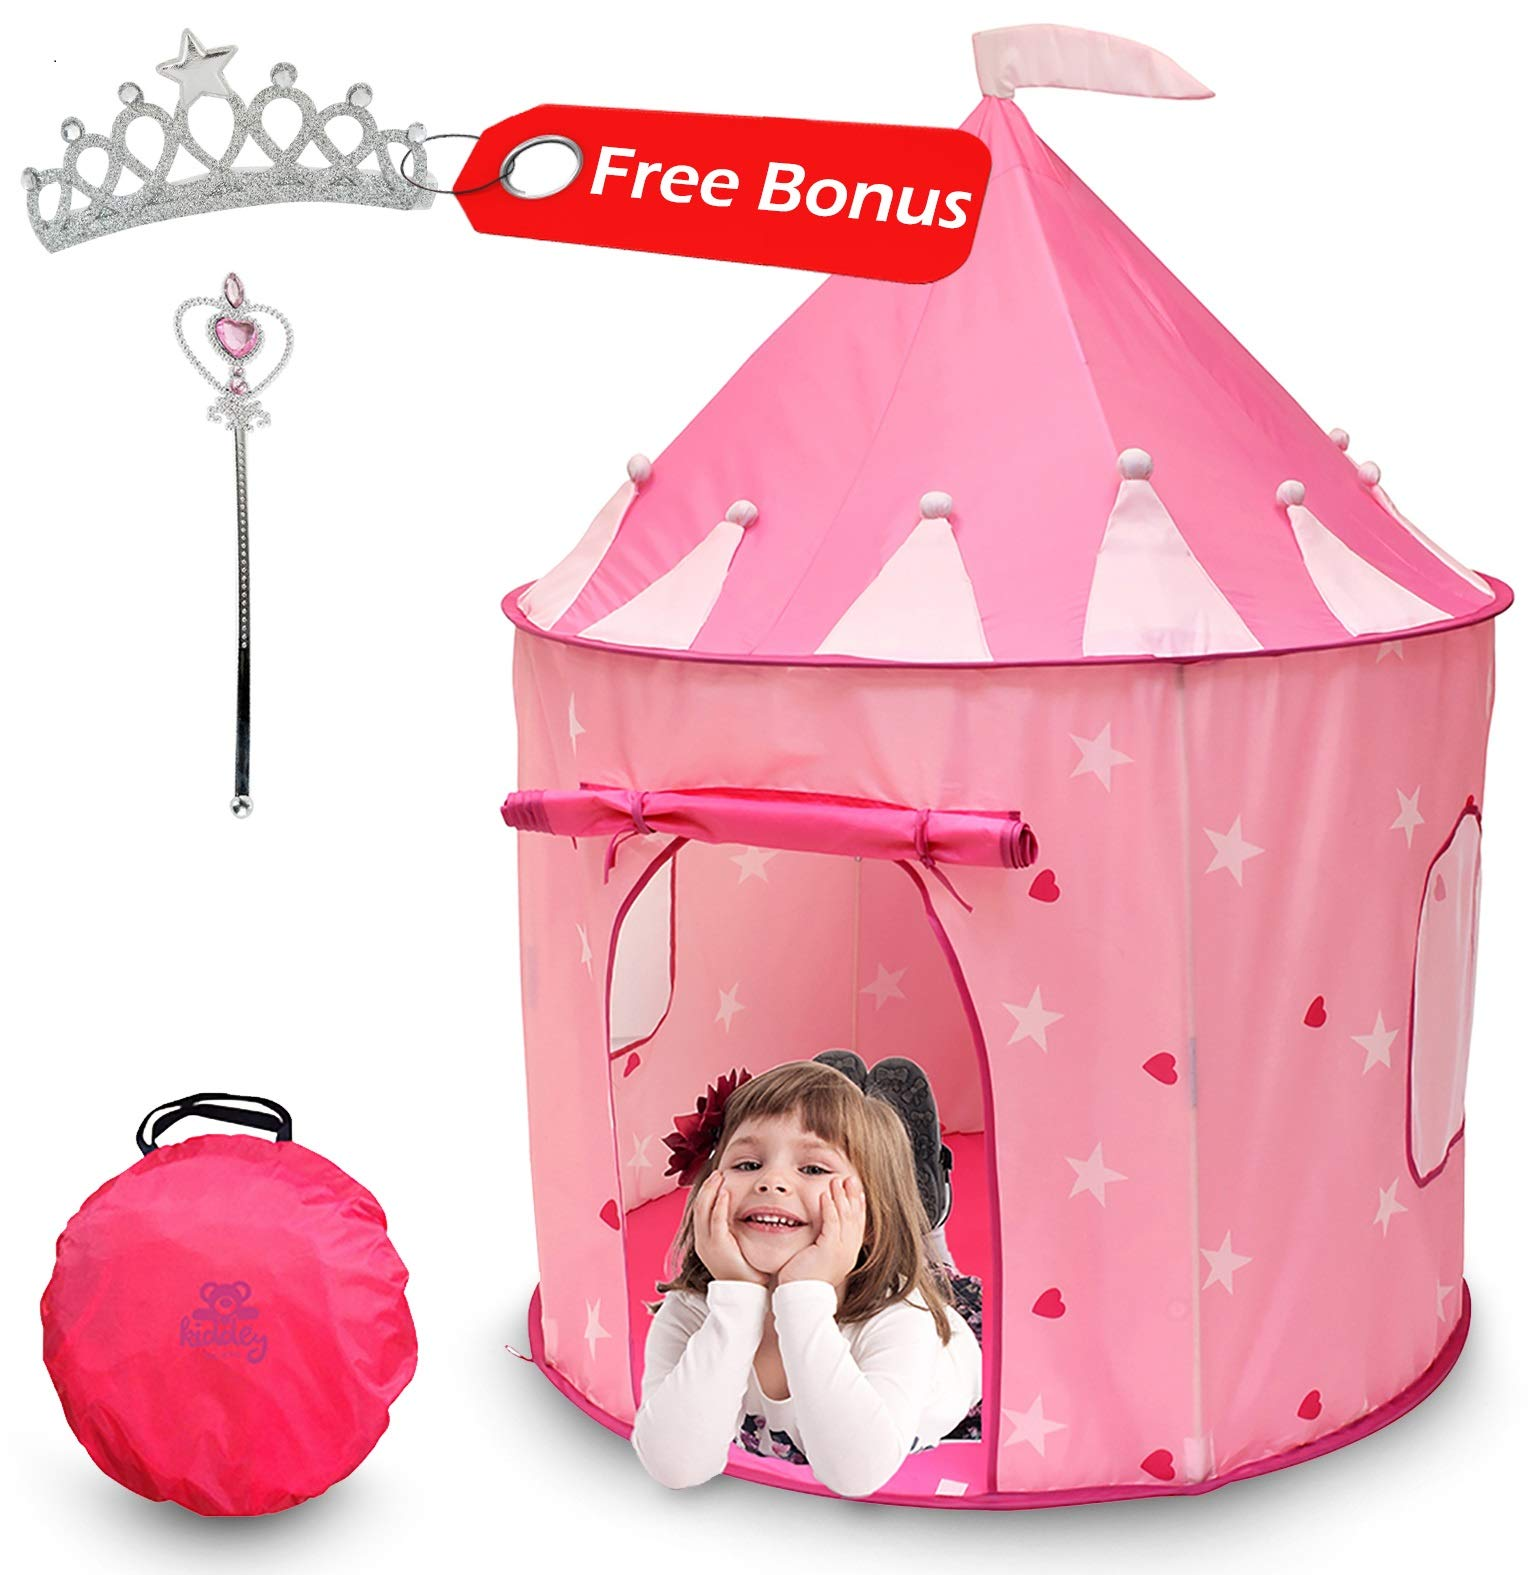 Kiddey Princess Castle Play Tent (Pink) - with Glow in The Dark Stars - Indoor/Outdoor Playhouse for Girls, with Carry Case for Easy Travel and Storage. Great Gift Idea by Kiddey